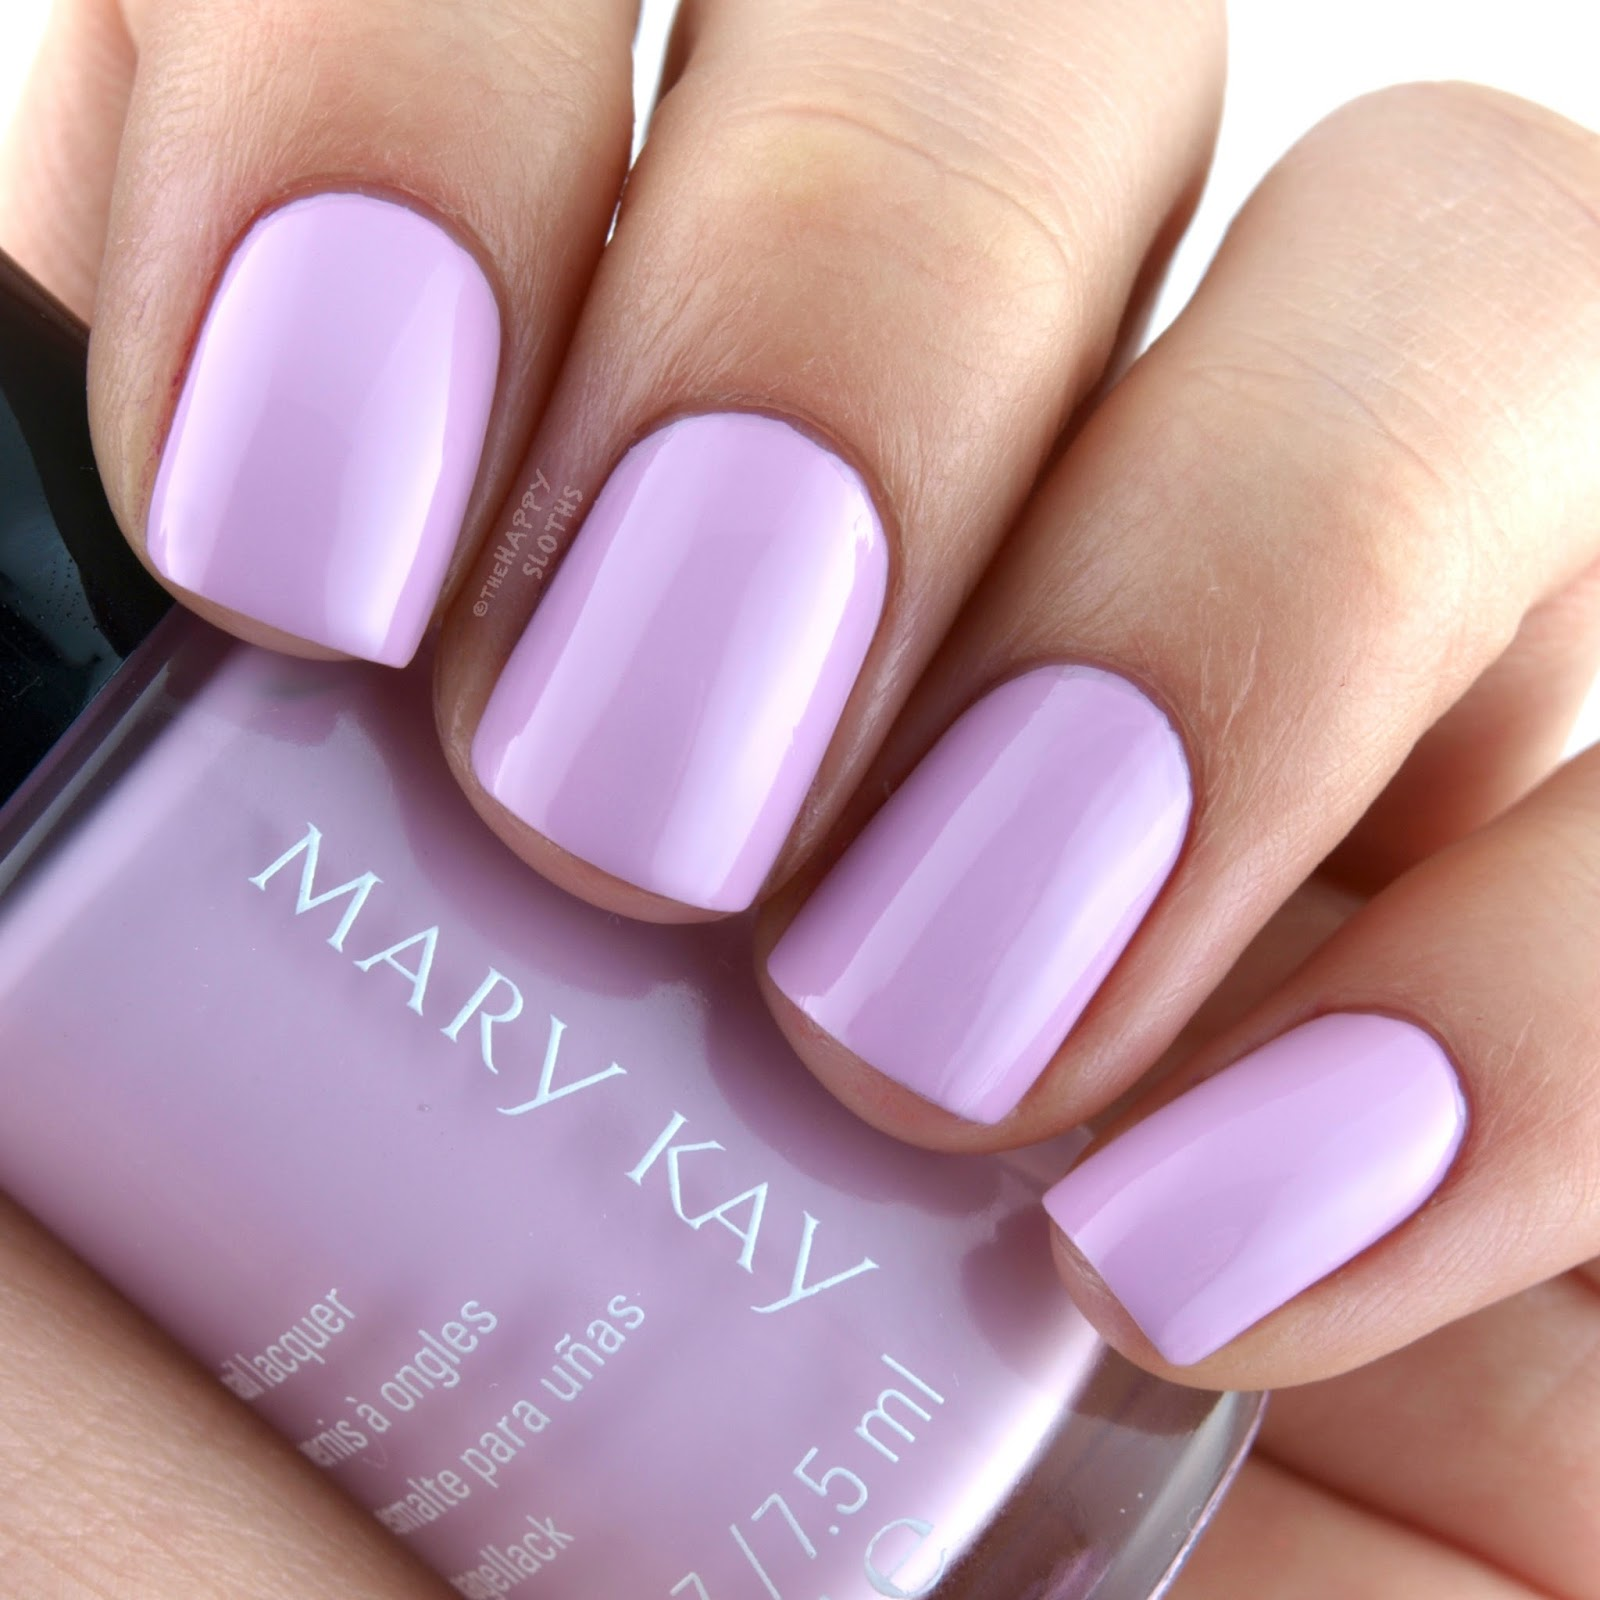 Mary Kay Spring 2017 Light, Reinvented Collection Nail Lacquer Luminous Mauve: Review and Swatches